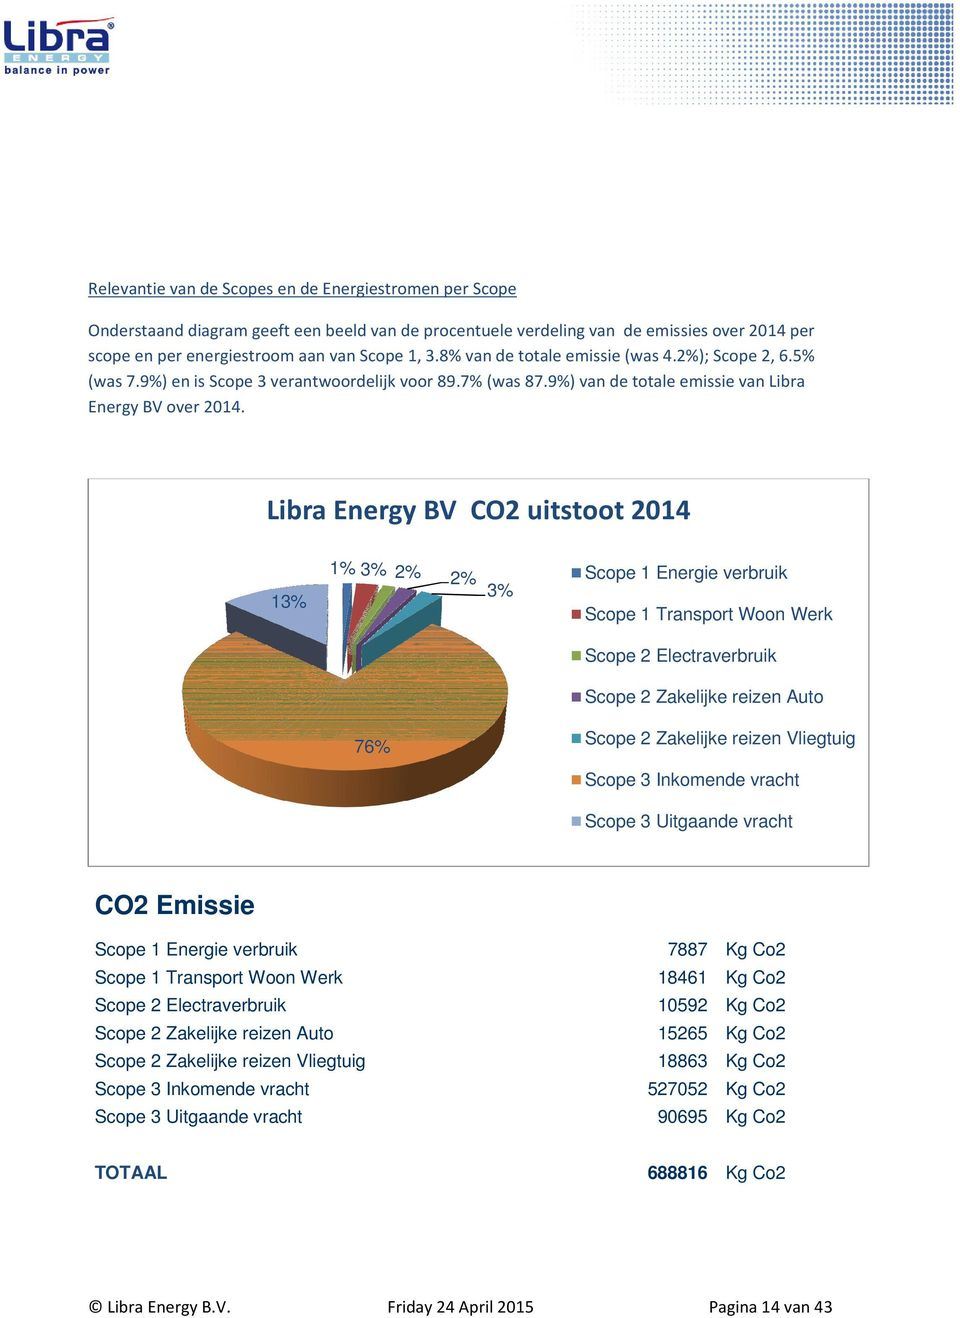 Libra Energy BV CO2 uitstoot 2014 13% 1% 3% 2% 2% 3% 76% Scope 1 Energie verbruik Scope 1 Transport Woon Werk Scope 2 Electraverbruik Scope 2 Zakelijke reizen Auto Scope 2 Zakelijke reizen Vliegtuig